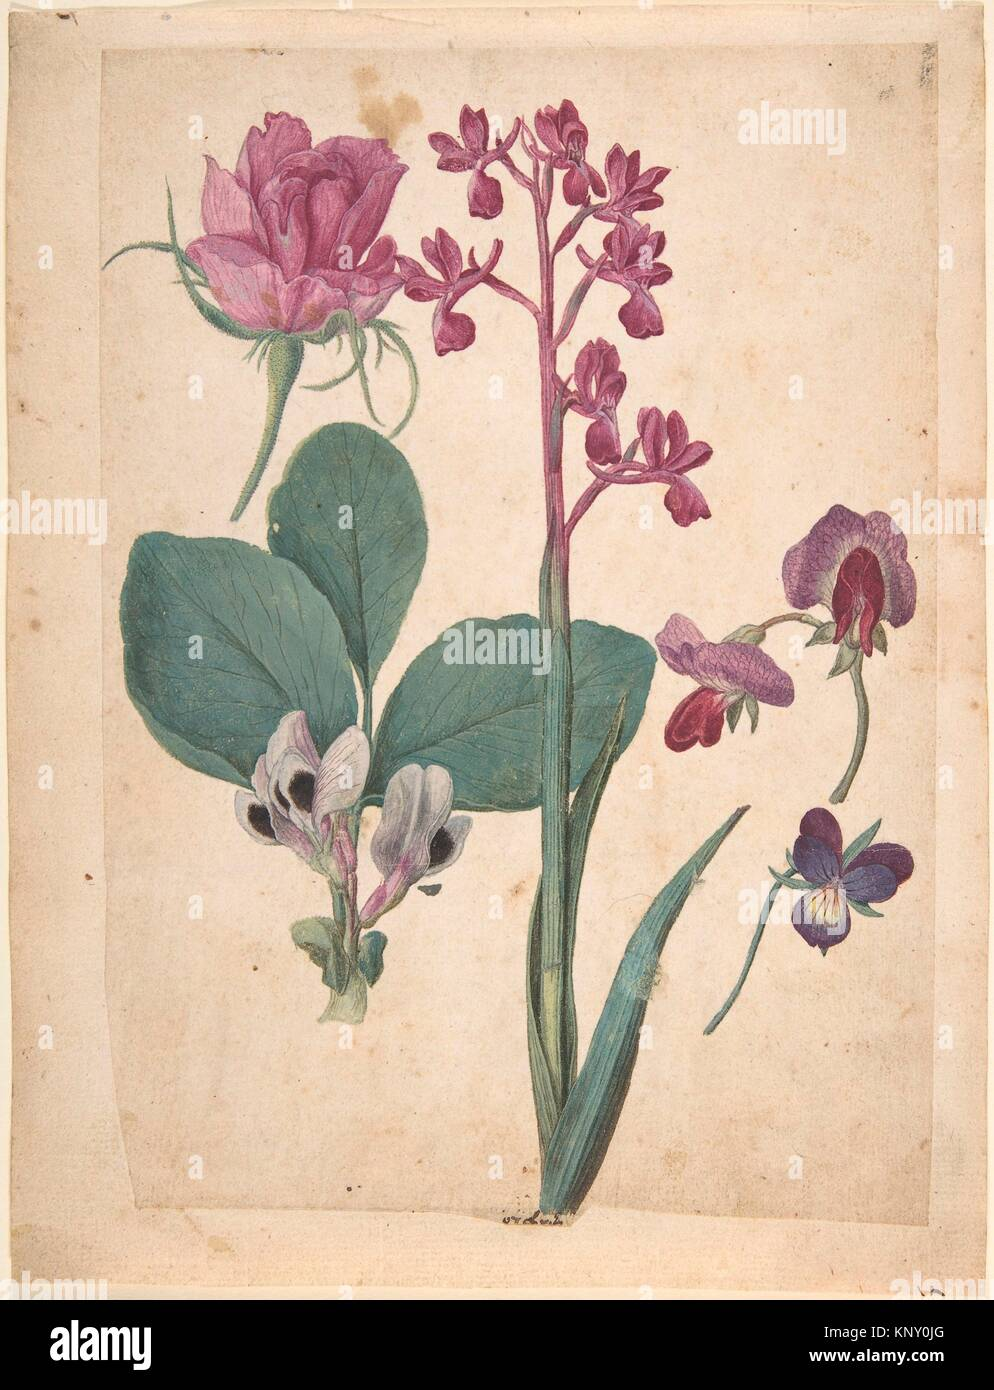 A Sheet of Studies of Flowers: A Rose, a Heartsease, a Sweet Pea, a Garden Pea, and a Lax-flowered Orchid. Artist: - Stock Image